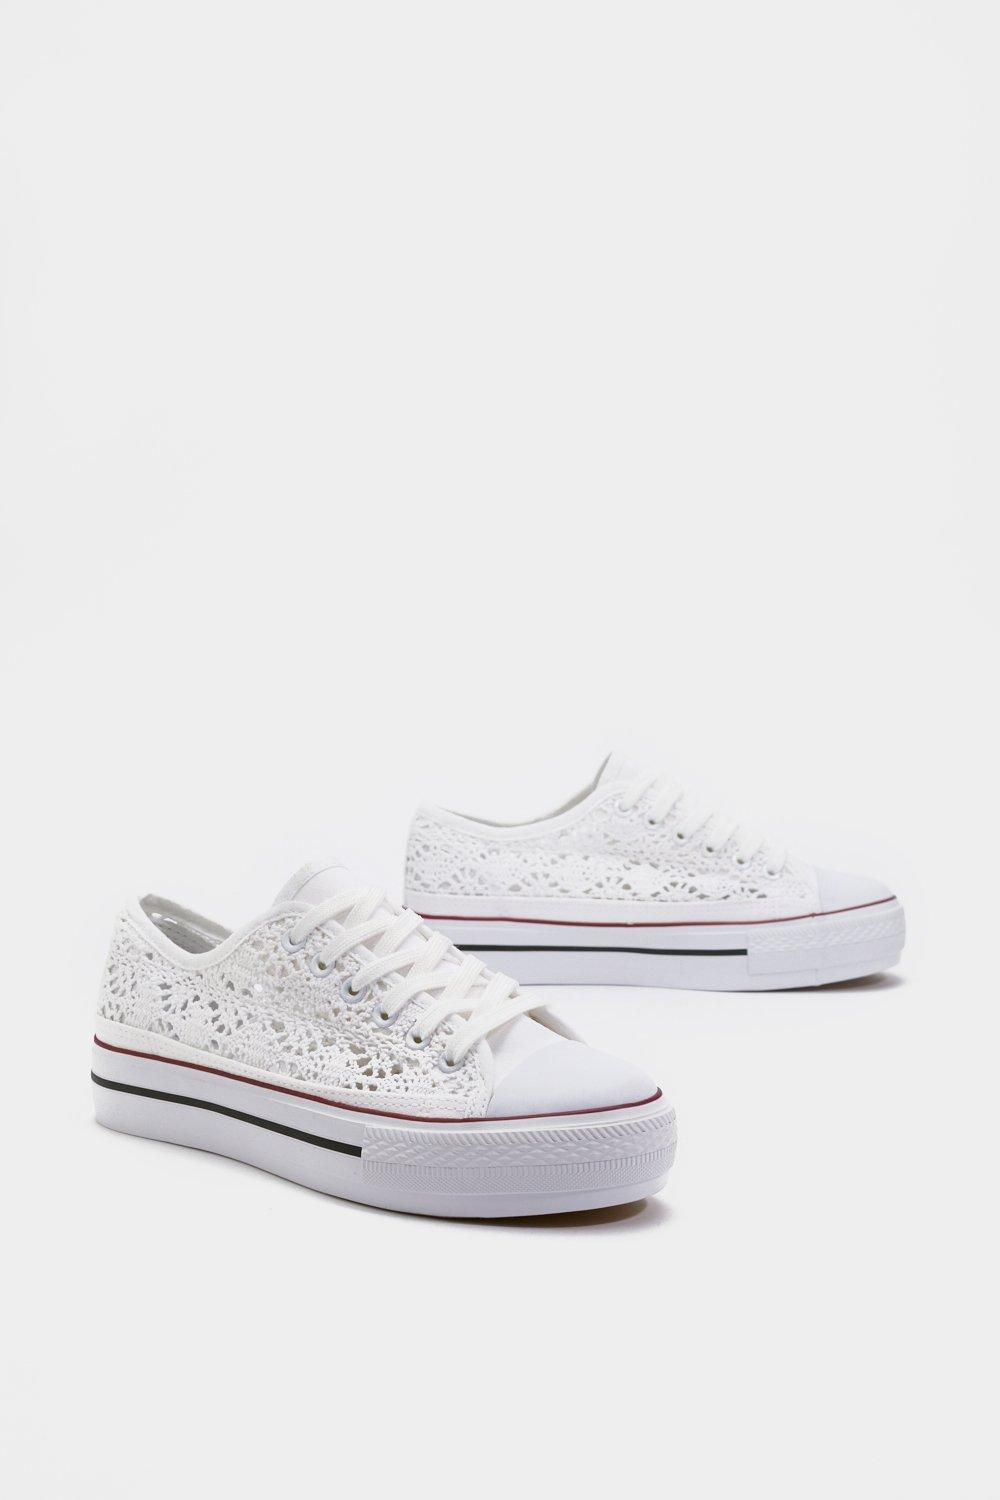 c55c75f88 Womens White Crochet Lace Up Sneakers